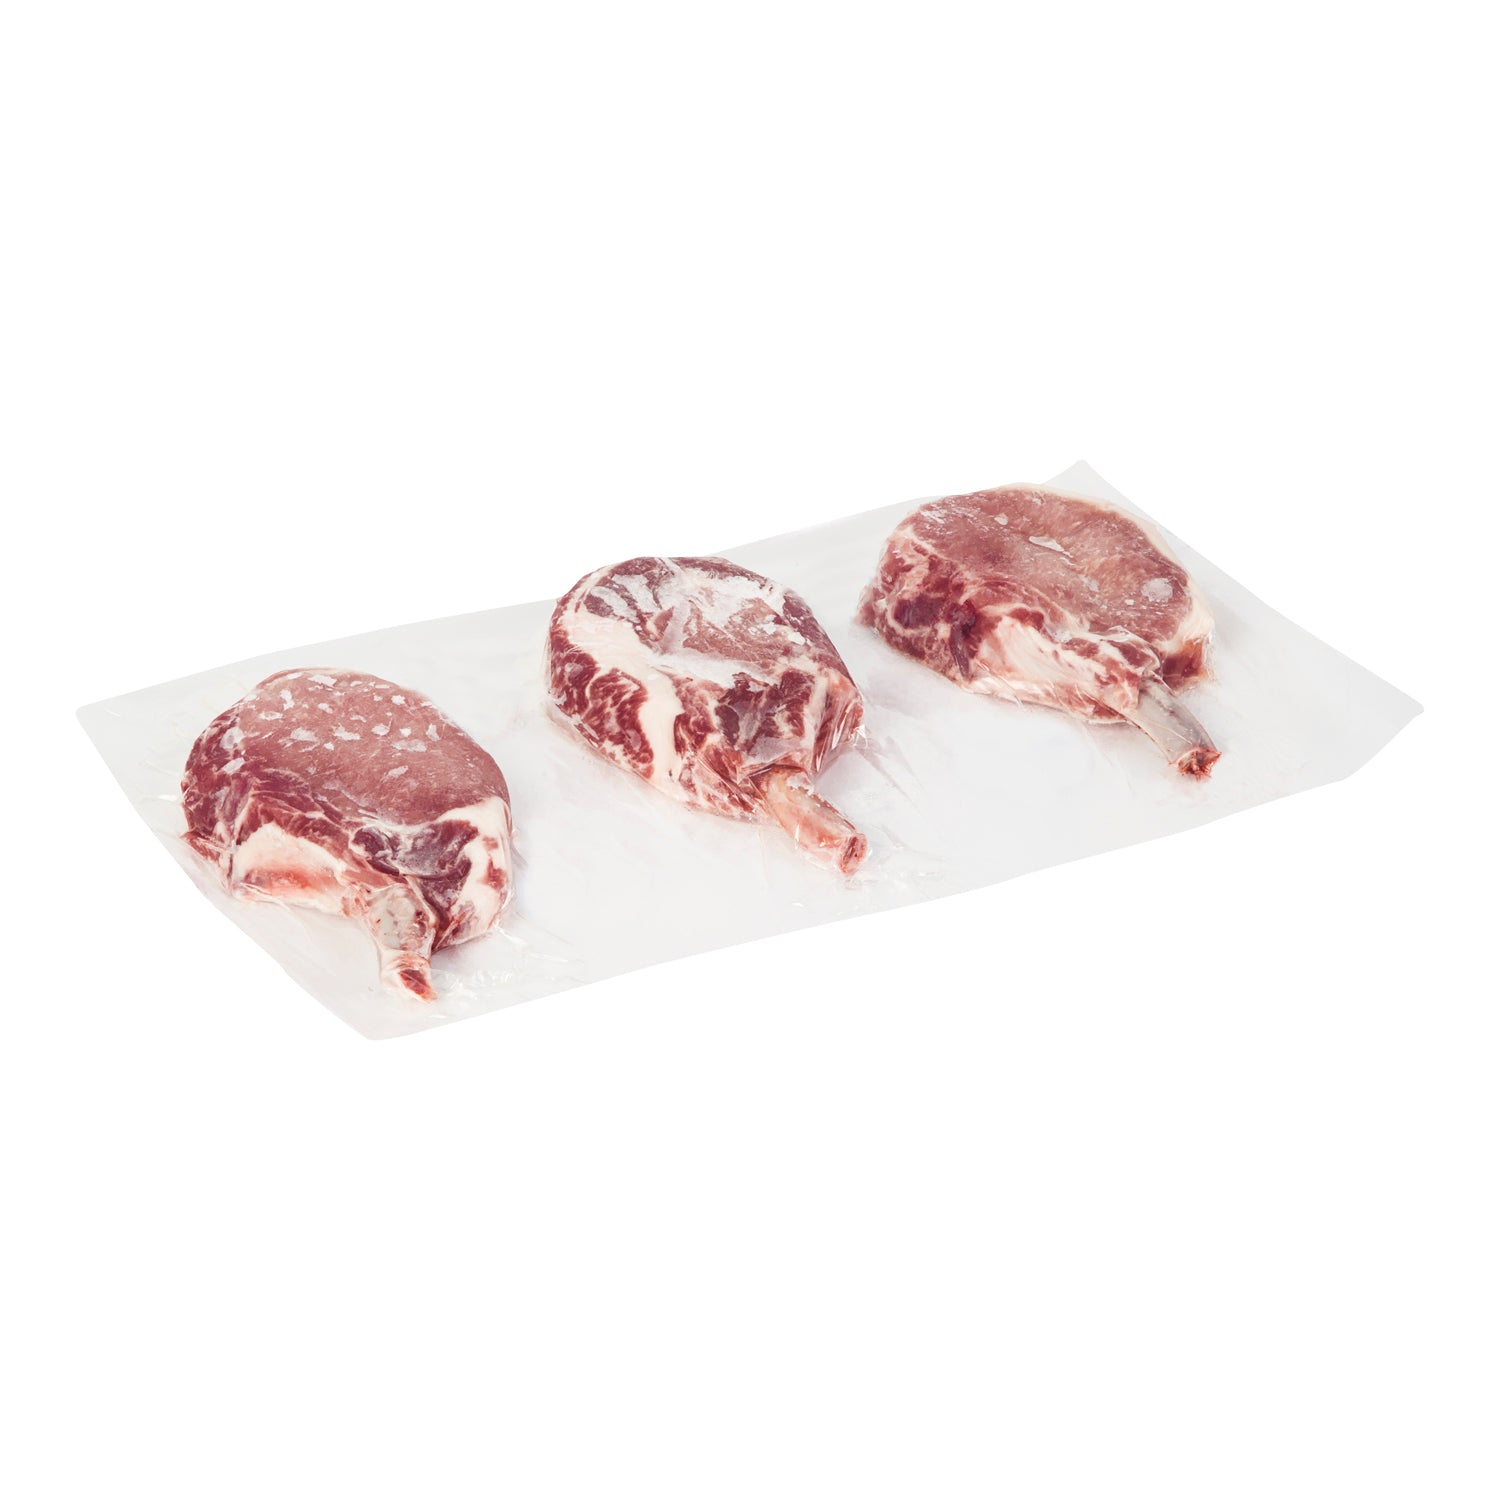 Sysco Butcher Block Frozen Frenched Bone-in Pork Chops 10 oz - 16 Pack [$5.98/each]